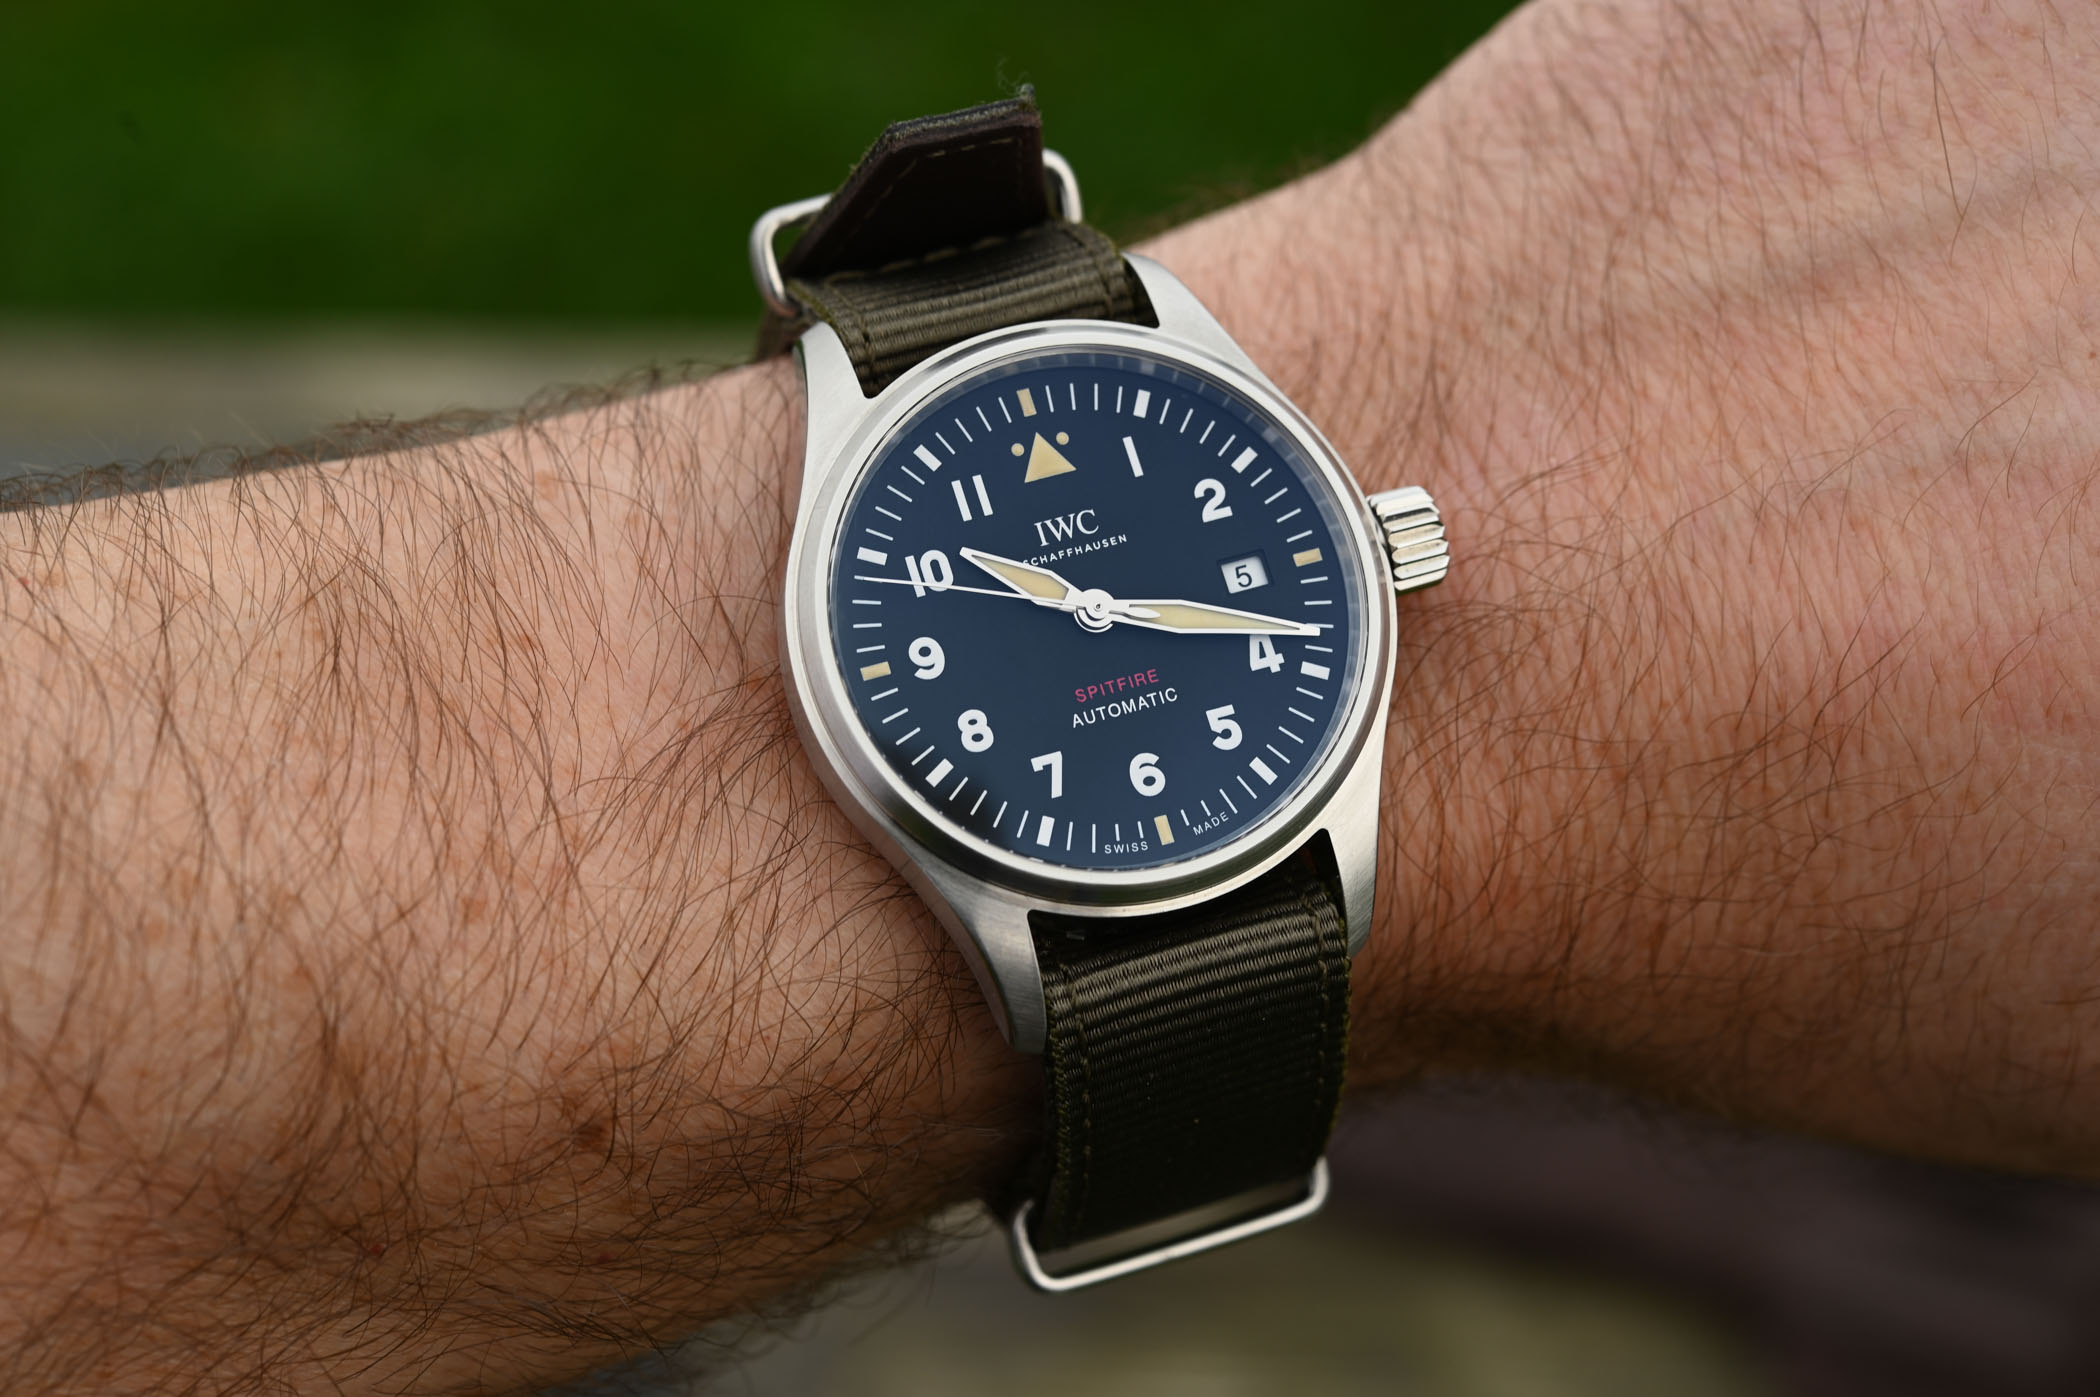 biwc-pilots-watch-automatic-spitfire-stainless-steel